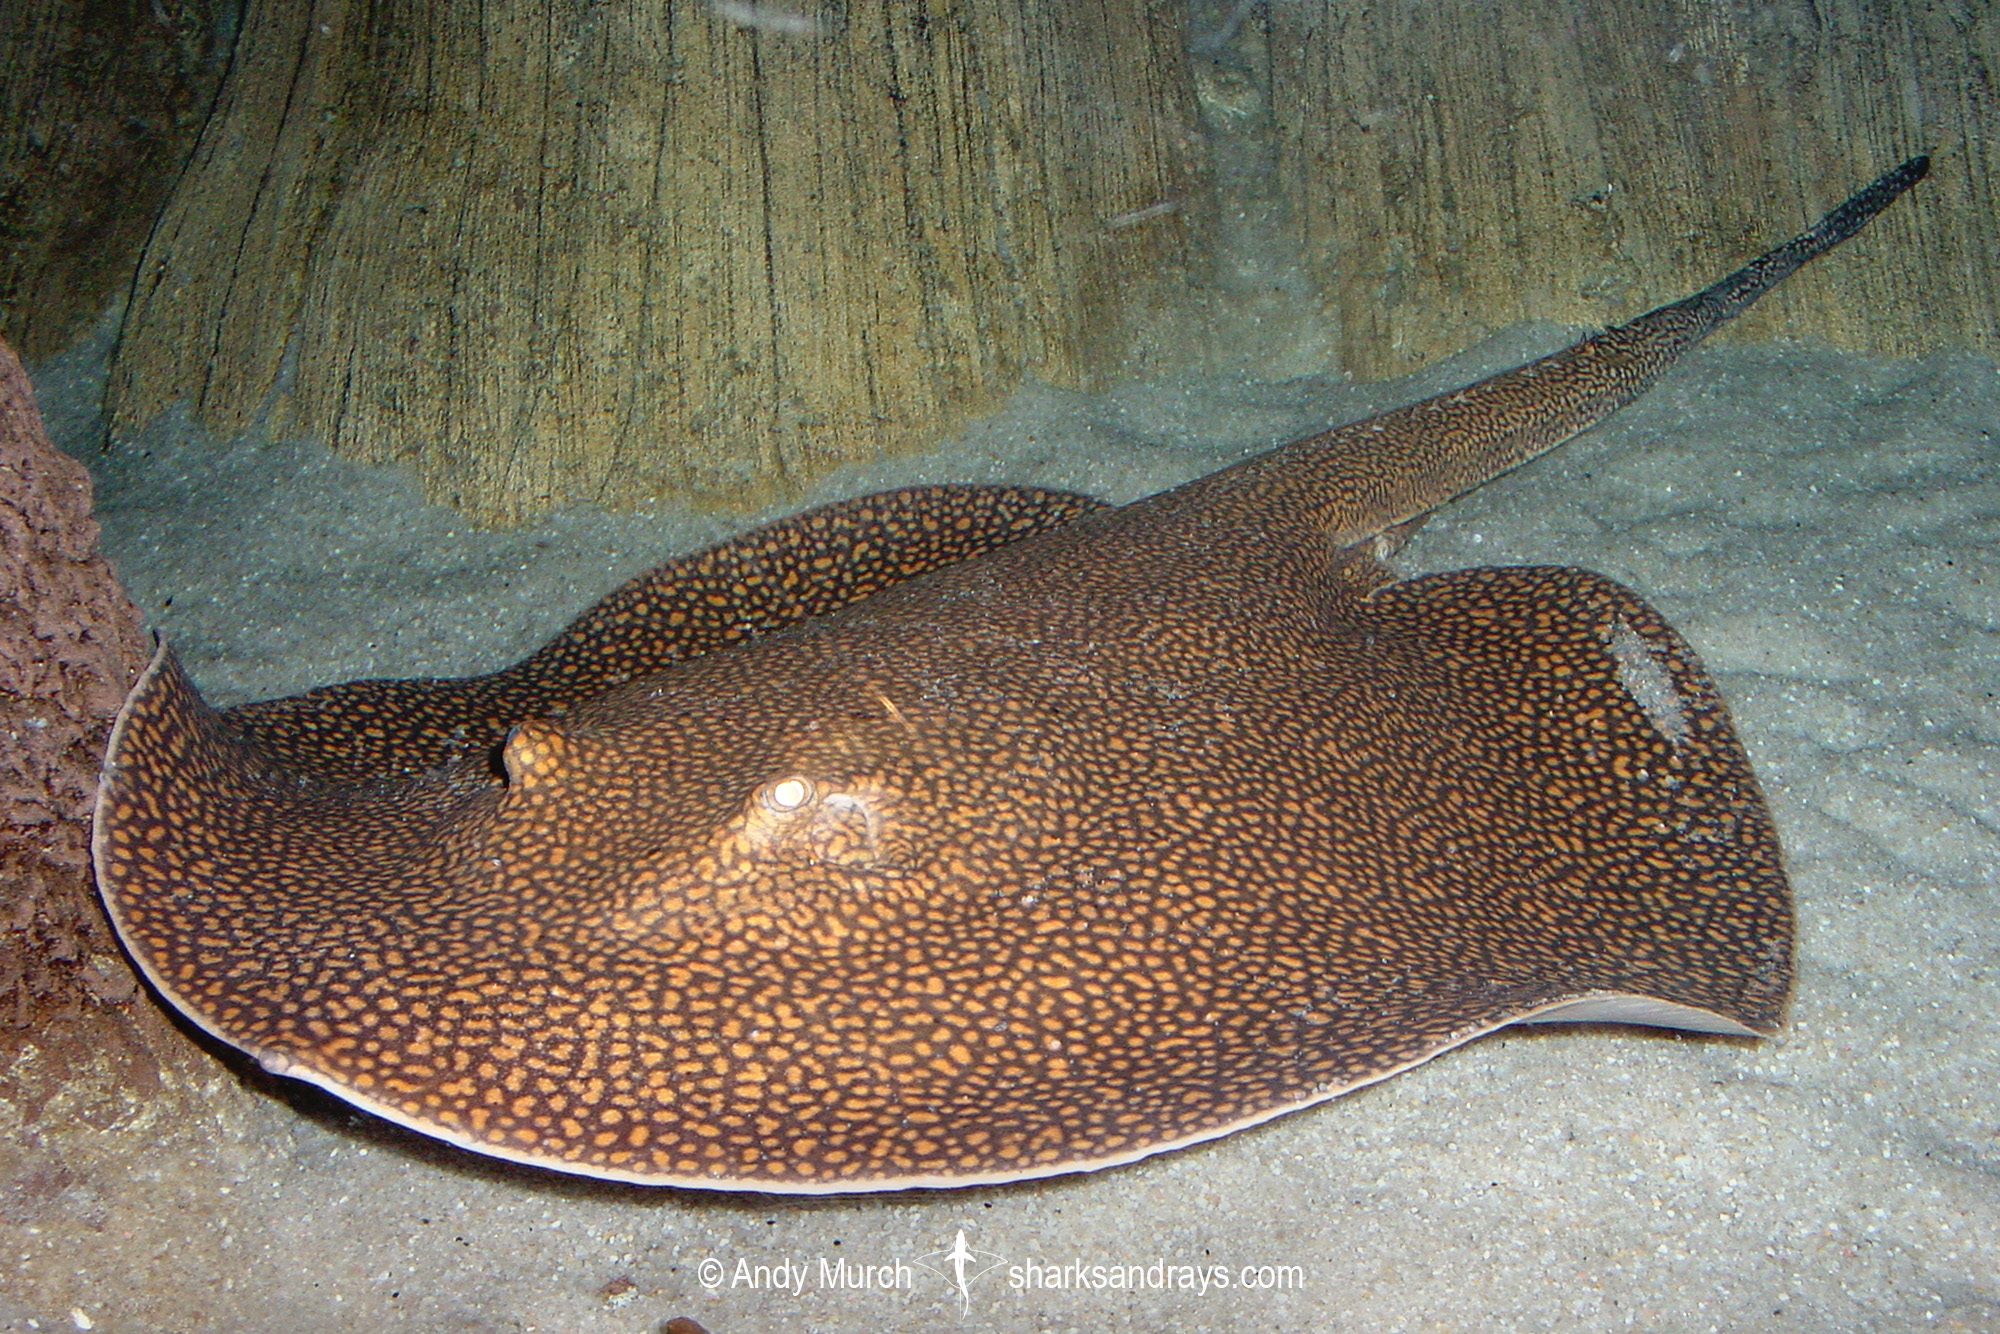 Reticulated Freshwater Stingray